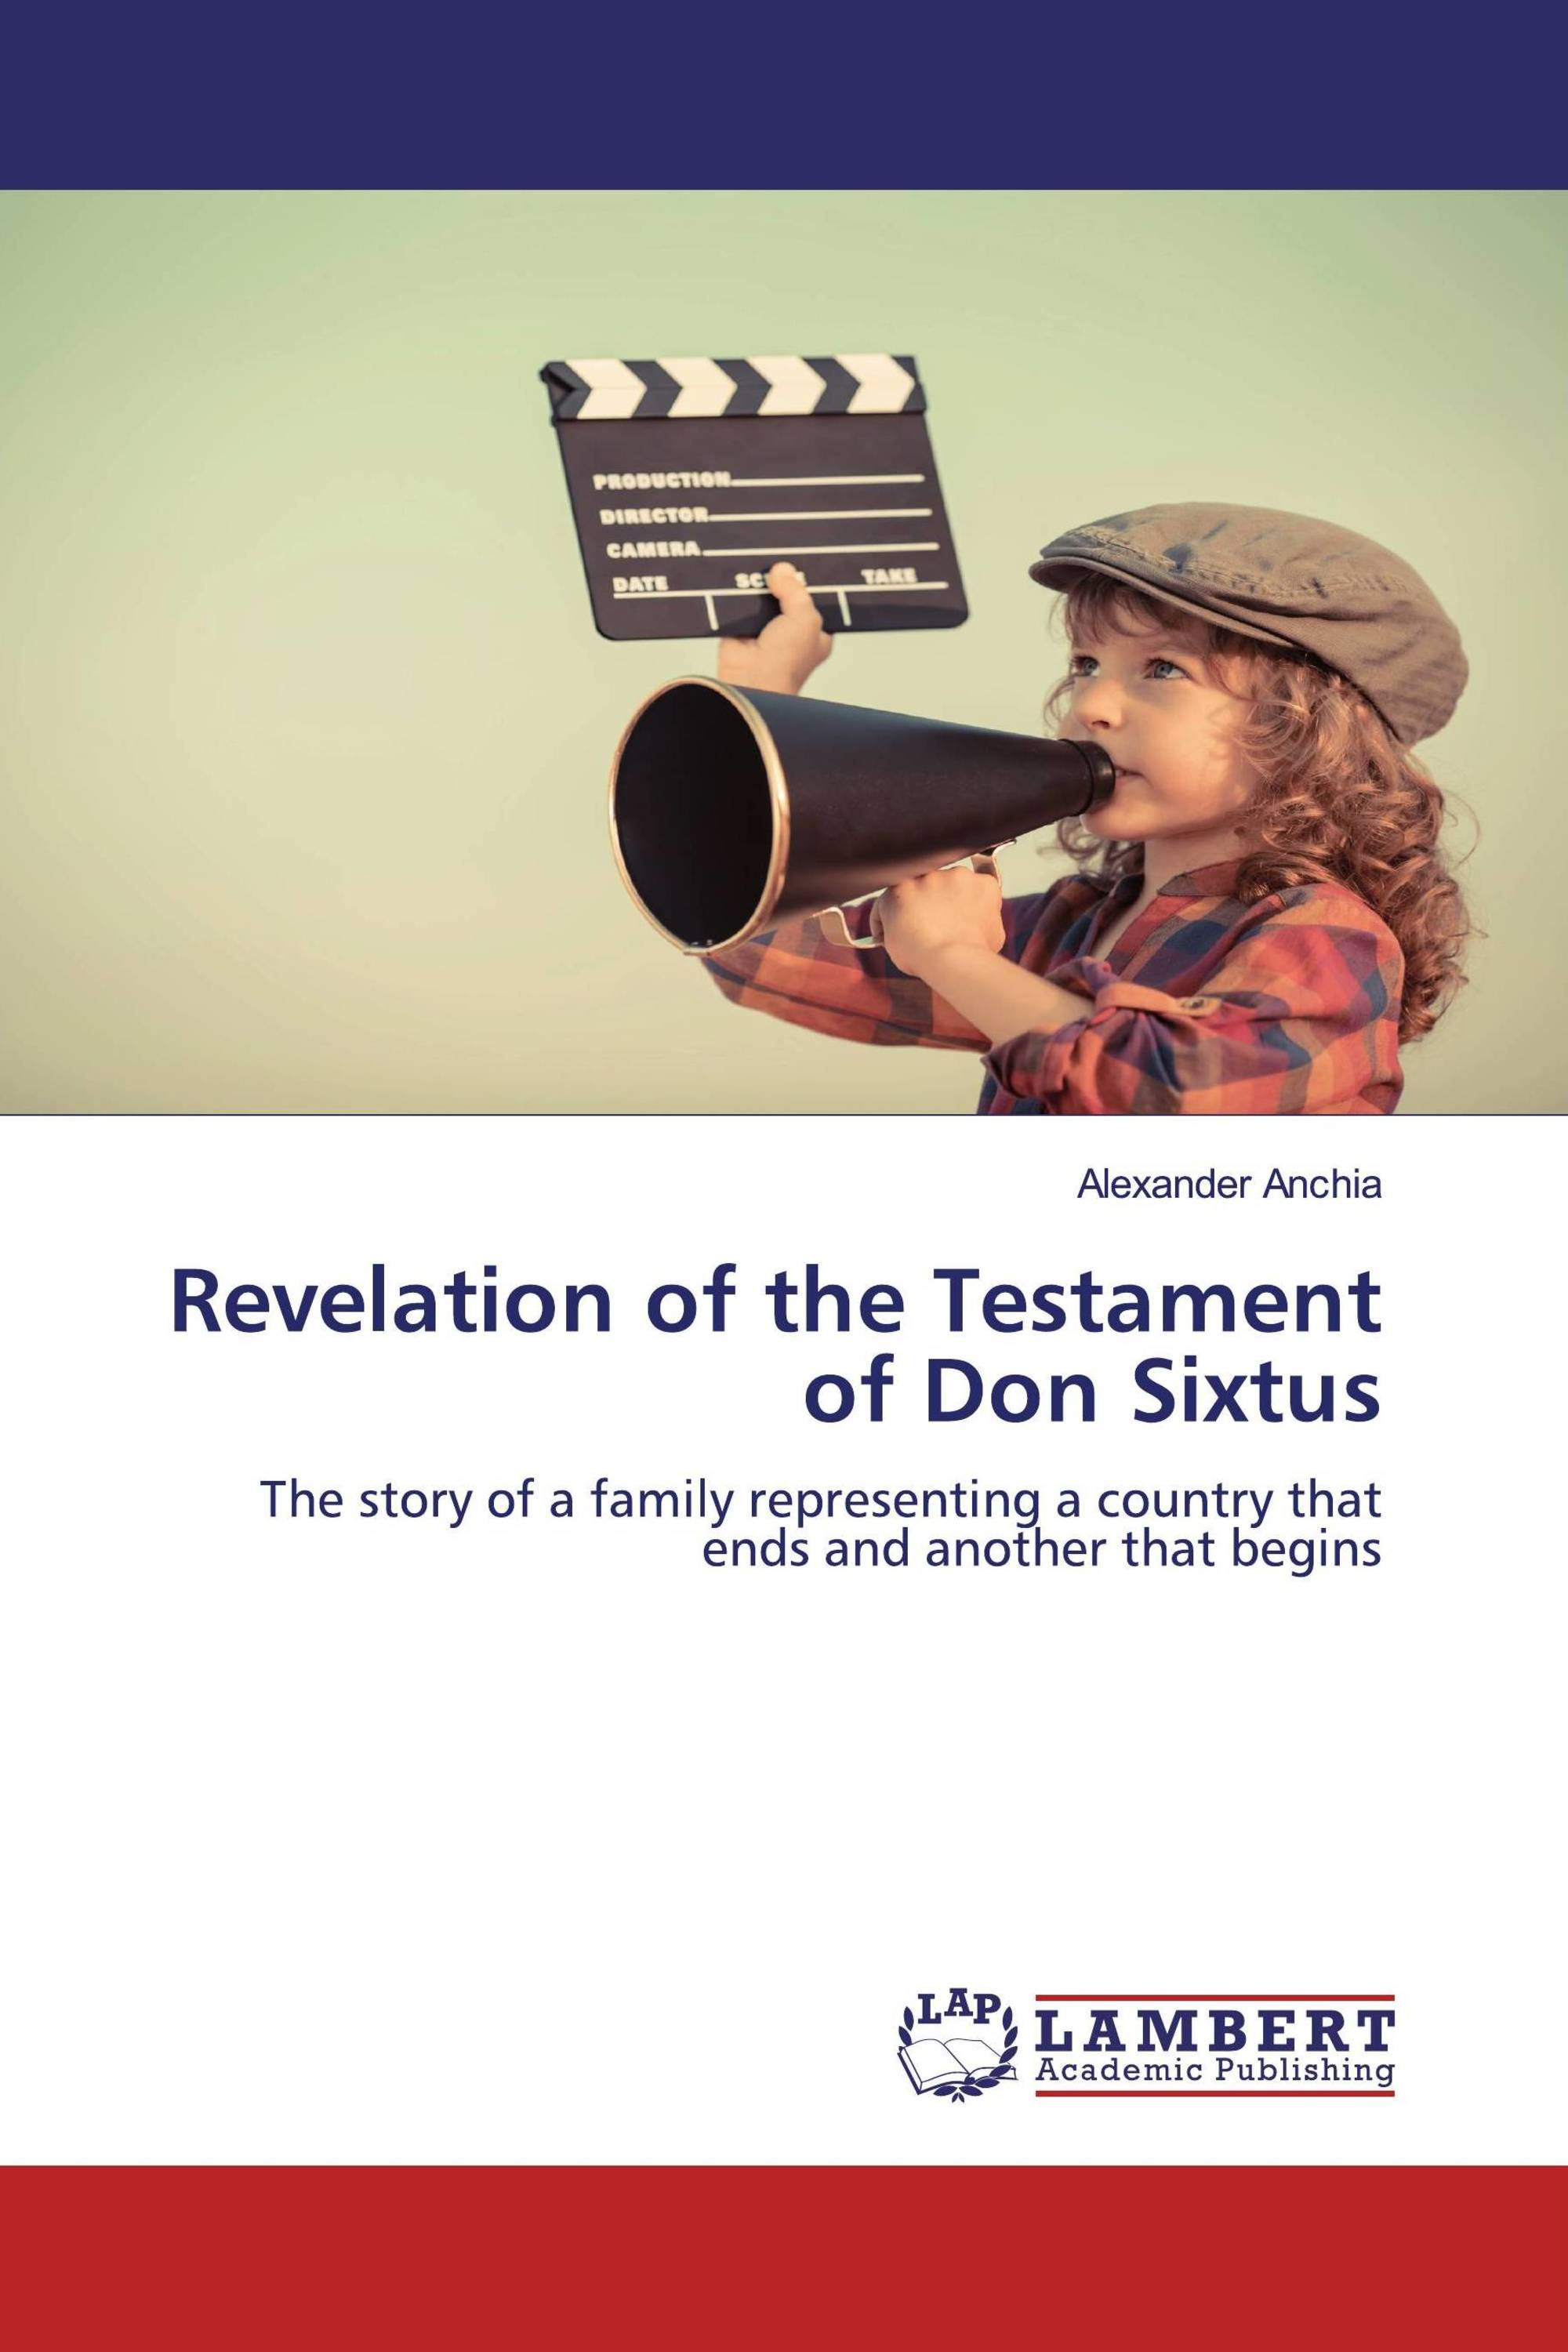 Revelation of the Testament of Don Sixtus